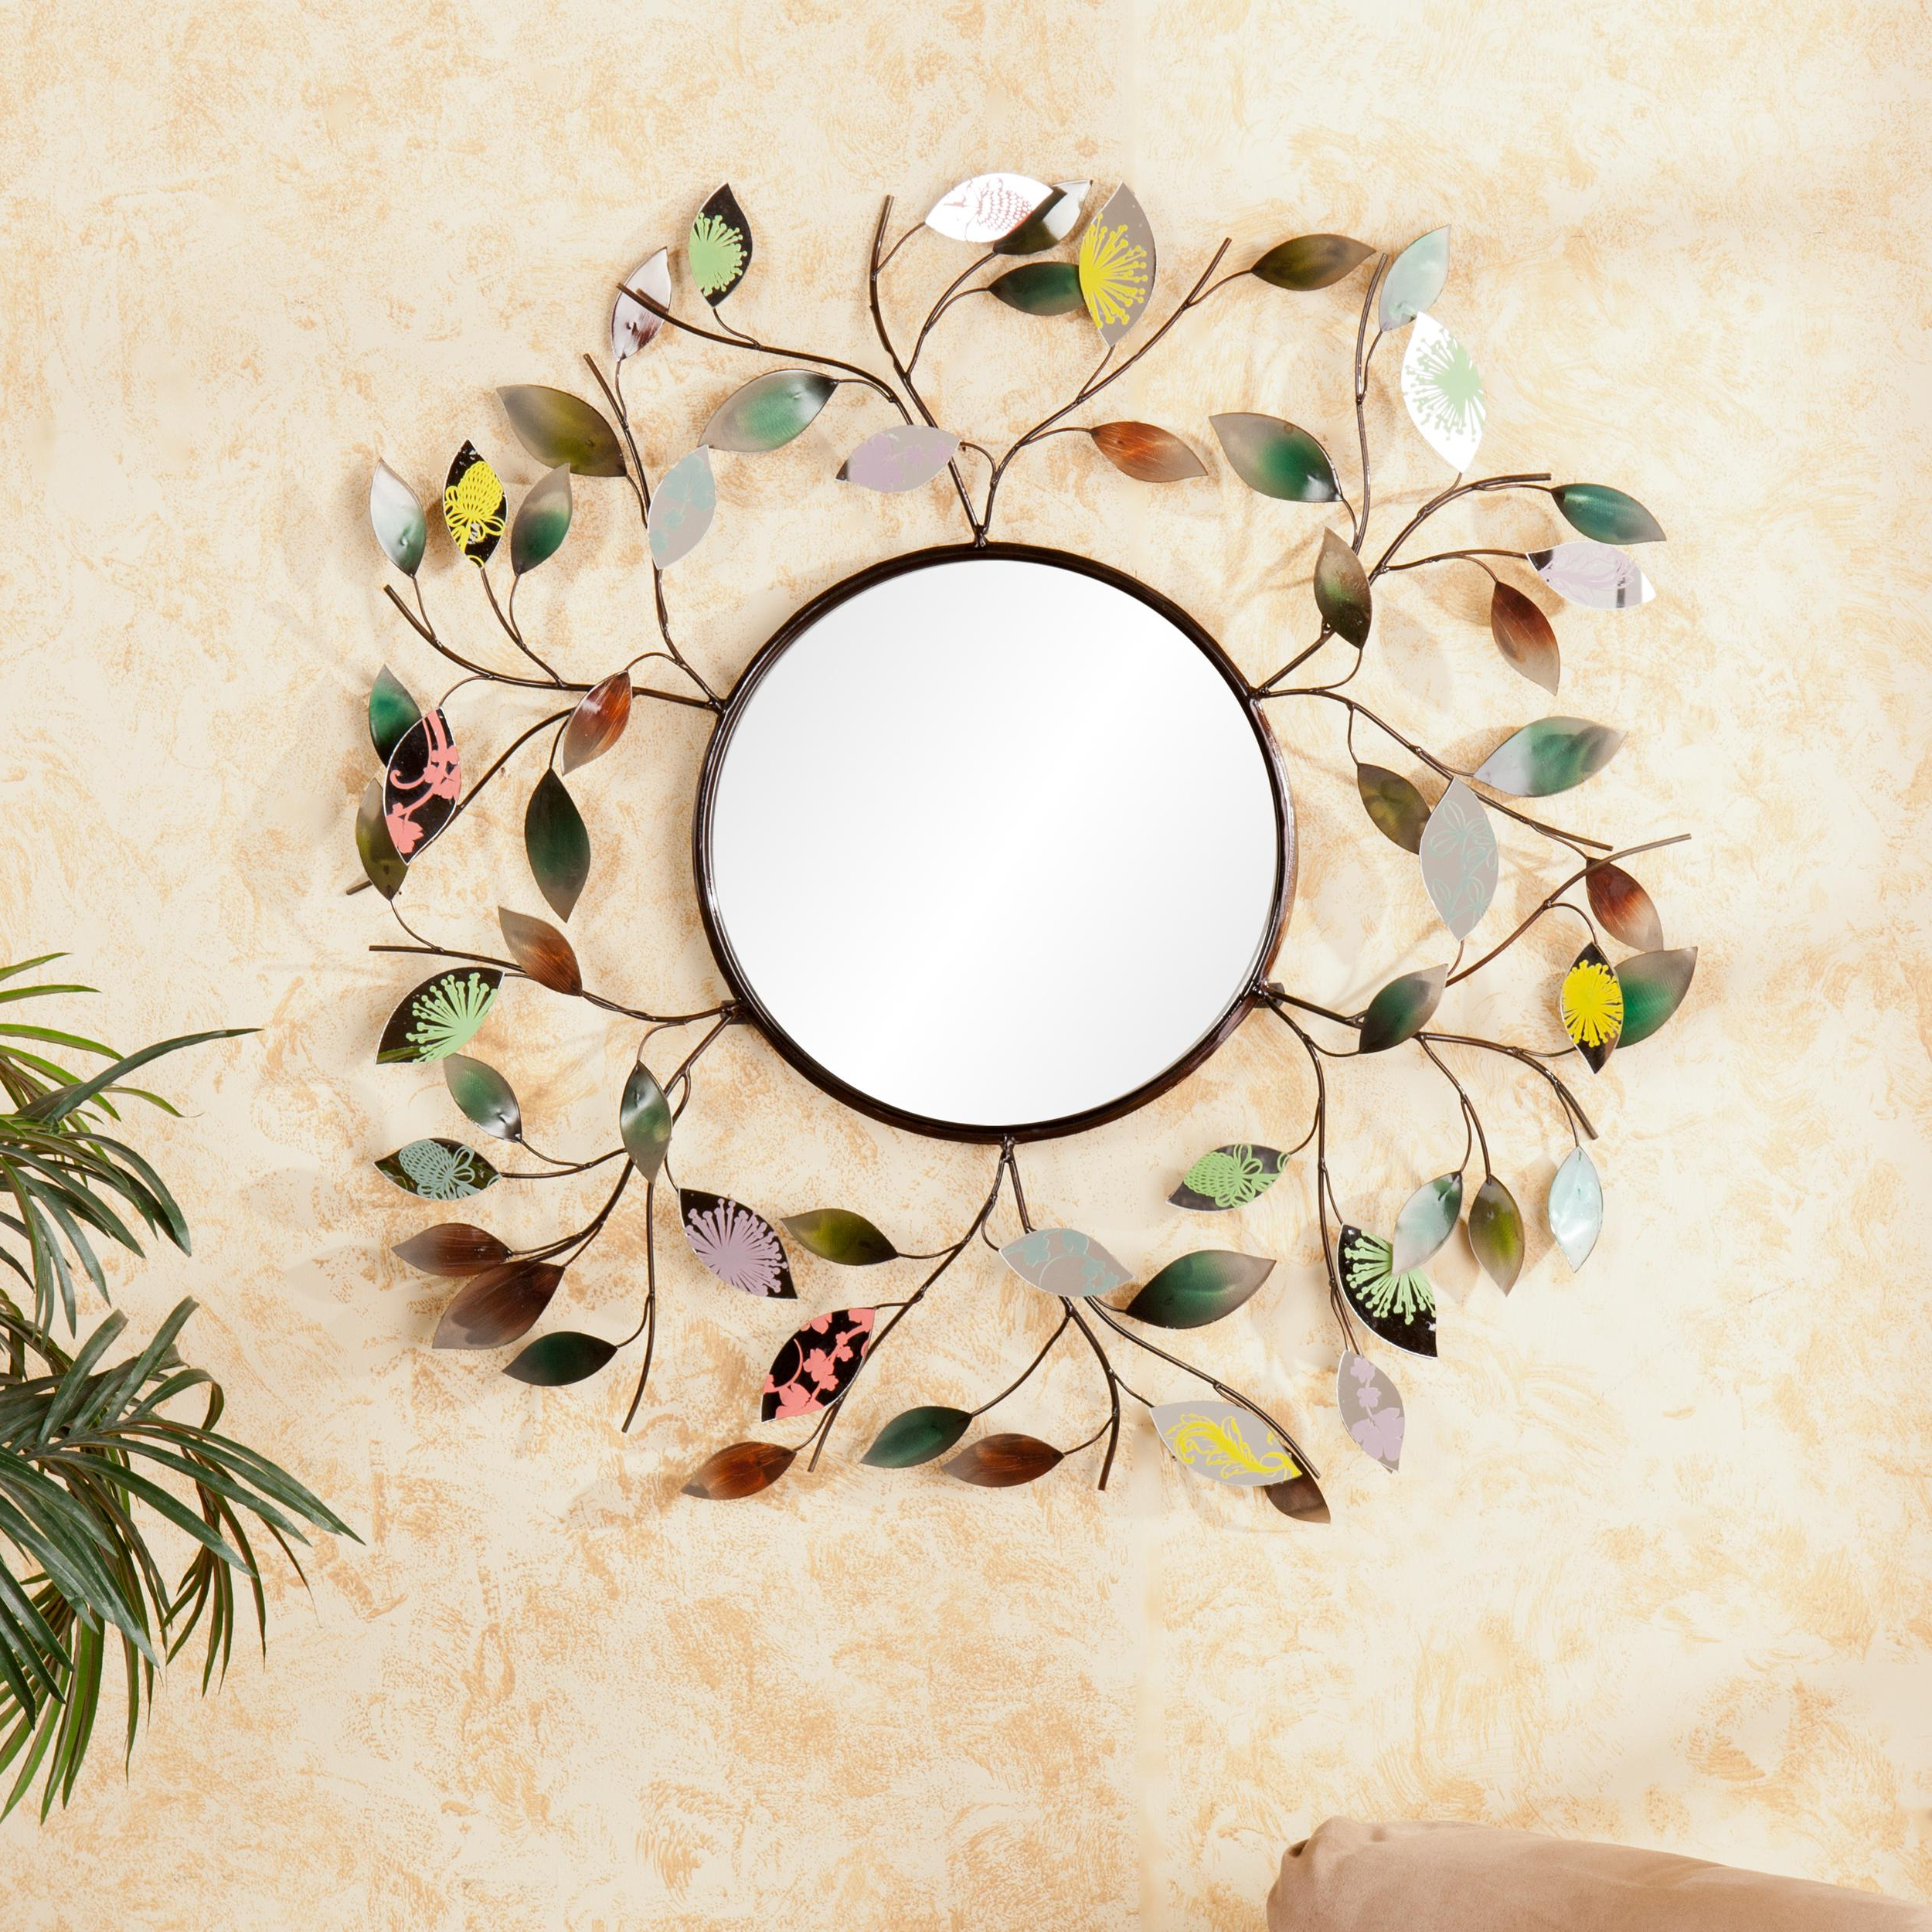 Widely Used Decorative Metallic Leaf Wall Mirror – 3D Leaf Hanging Art – Multicolored  Eclectic Style Throughout Decorative Wall Mirrors (Gallery 3 of 20)